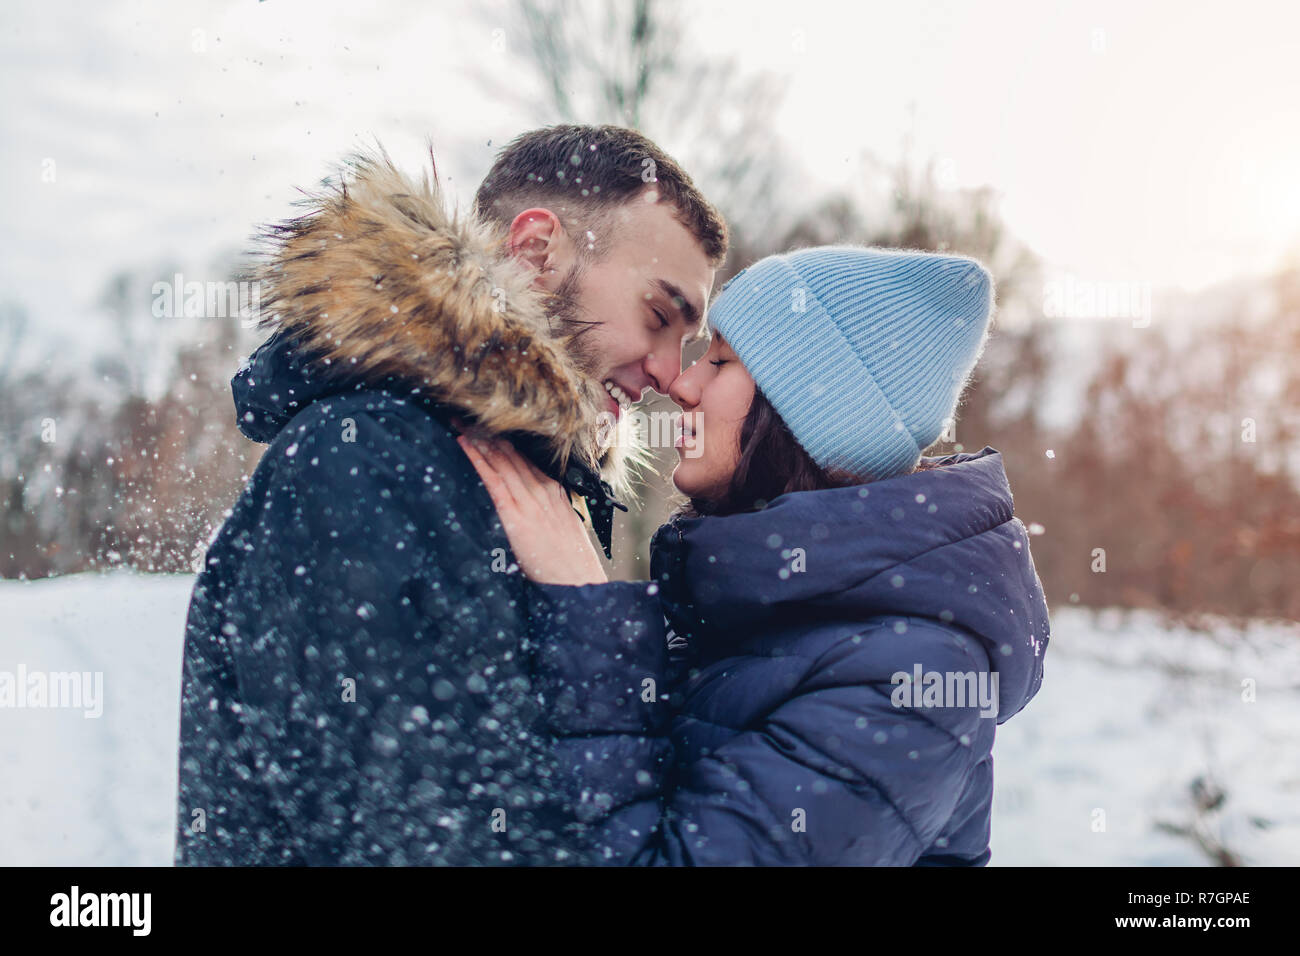 Beautiful loving couple walking and hugging in winter forest. People having fun outdoors under falling snow Stock Photo